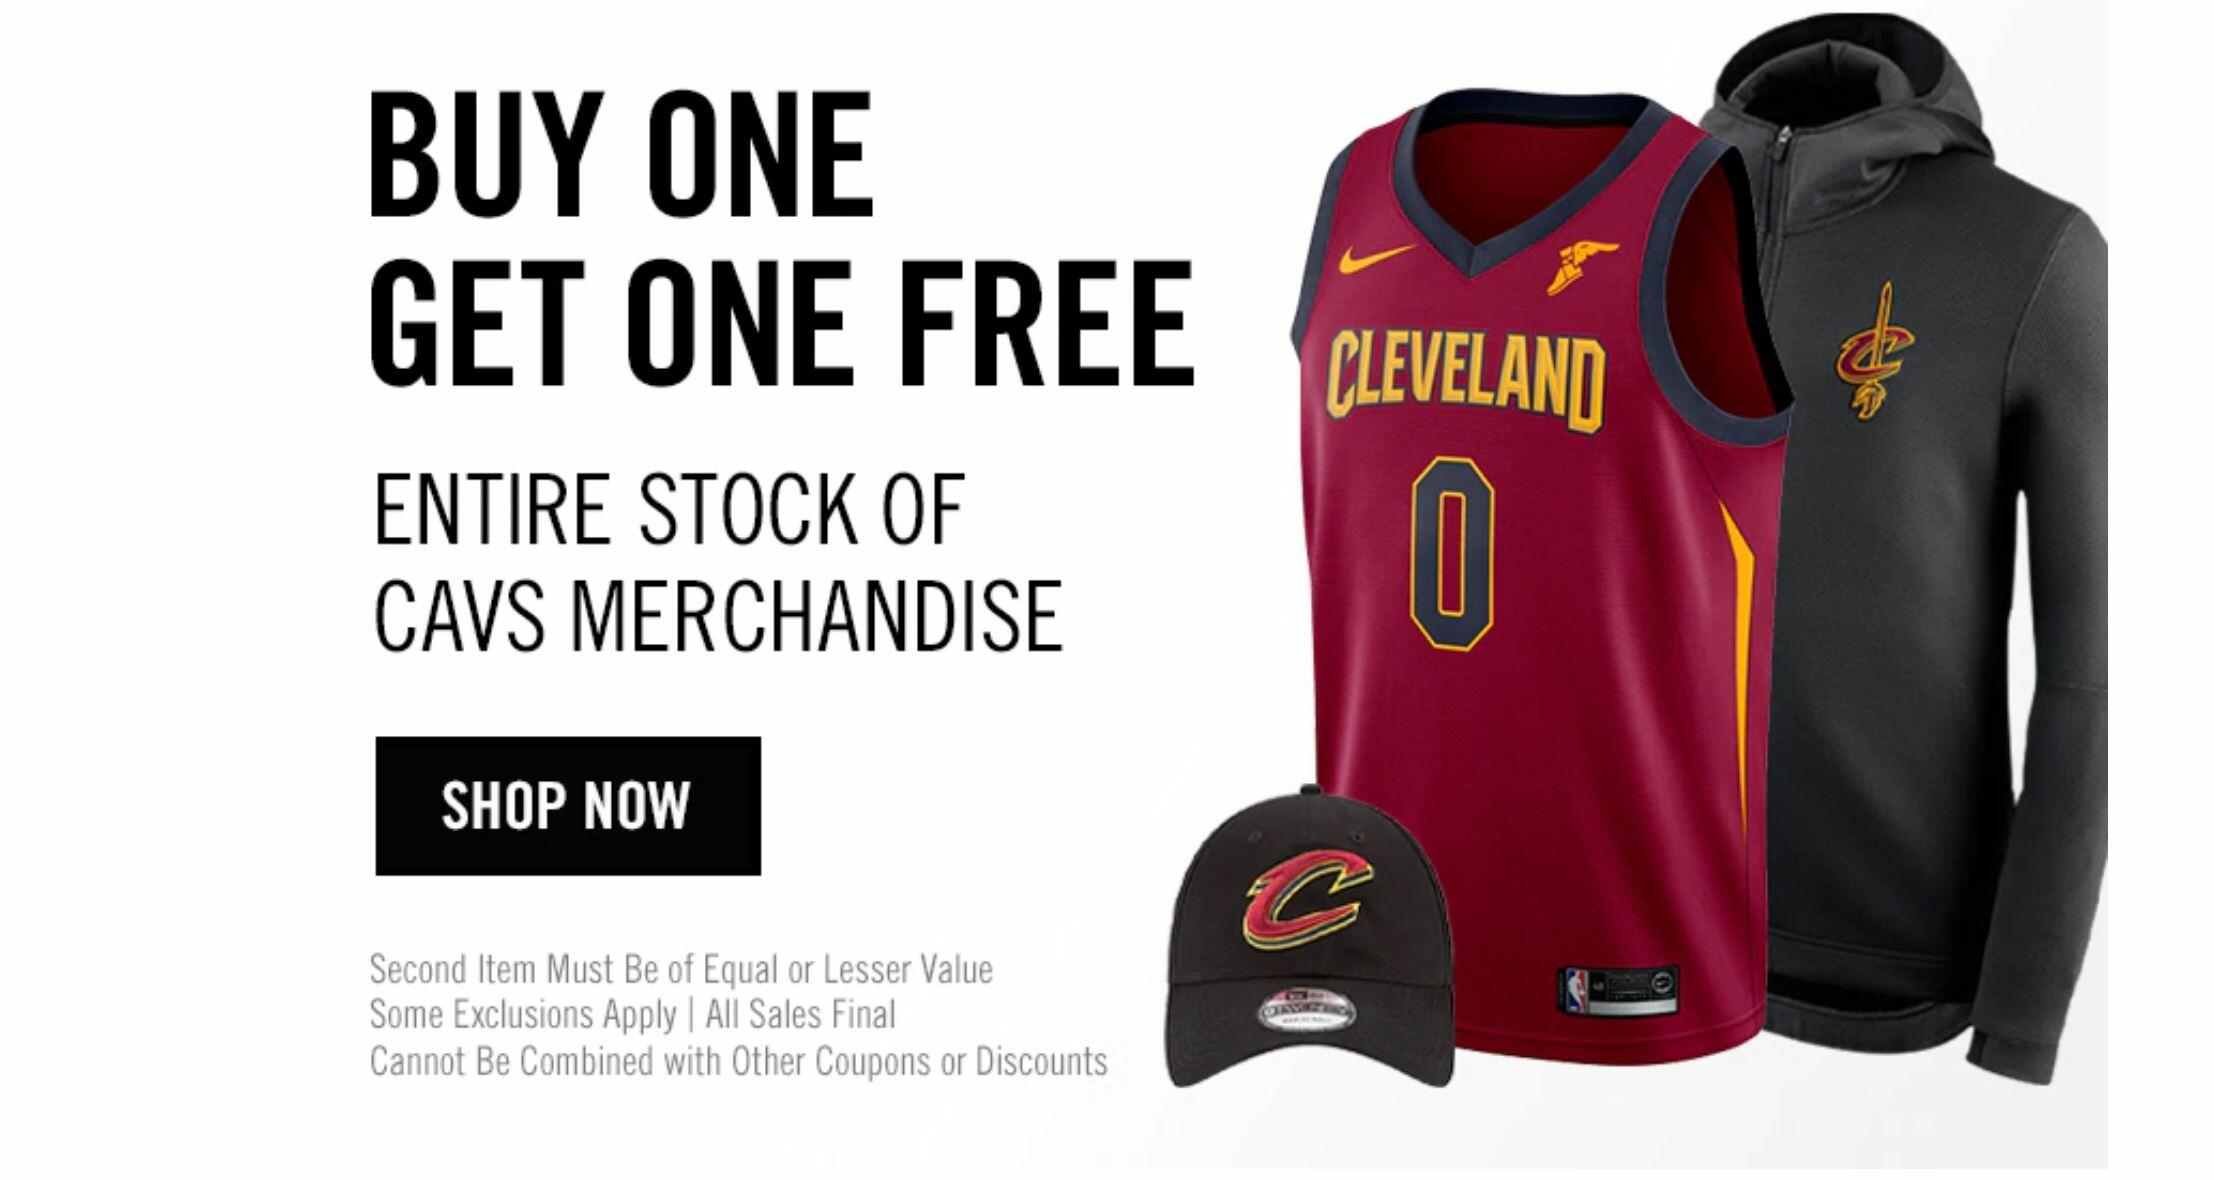 5e8b7426b812 To celebrate Fan Appreciation Night, TODAY ONLY (4/9) Cavaliers Team Shop  will offer fans a BUY ONE, GET ONE FREE deal on the entire stock of Cavs ...